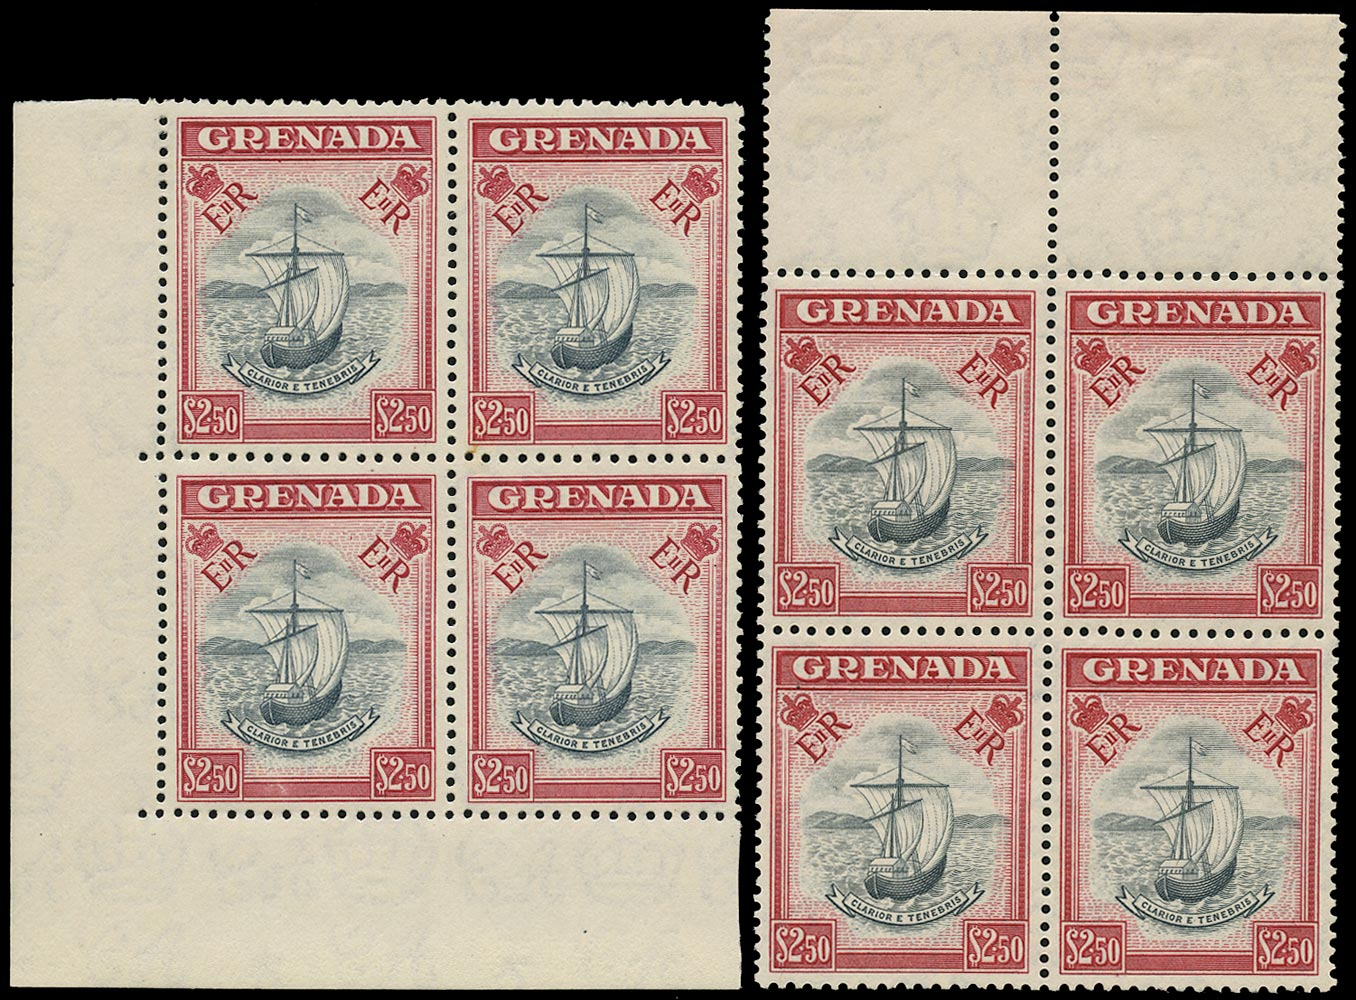 GRENADA 1953  SG204 Mint $2.50 slate-blue and carmine two blocks in contrasting shades